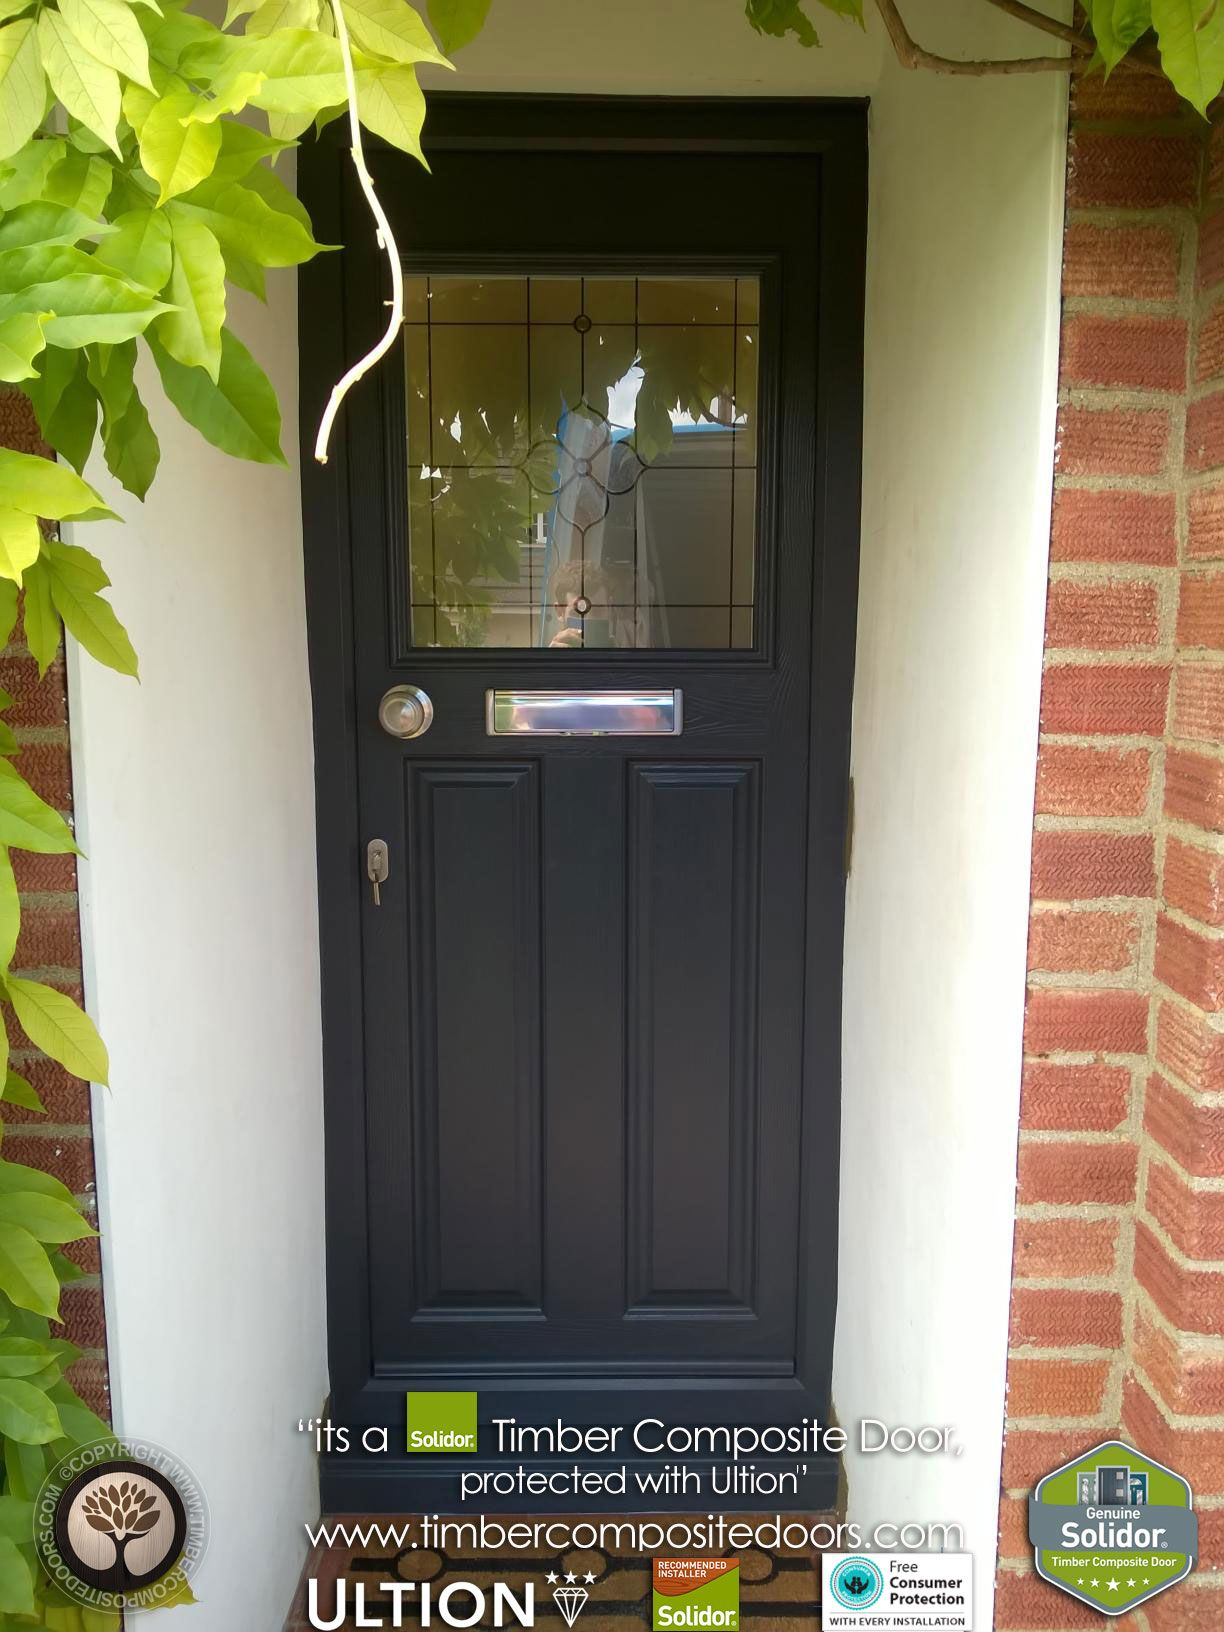 Black-1930s-Solidor-Timber-Composite-Door-With-Ultion-Lock | Front ...